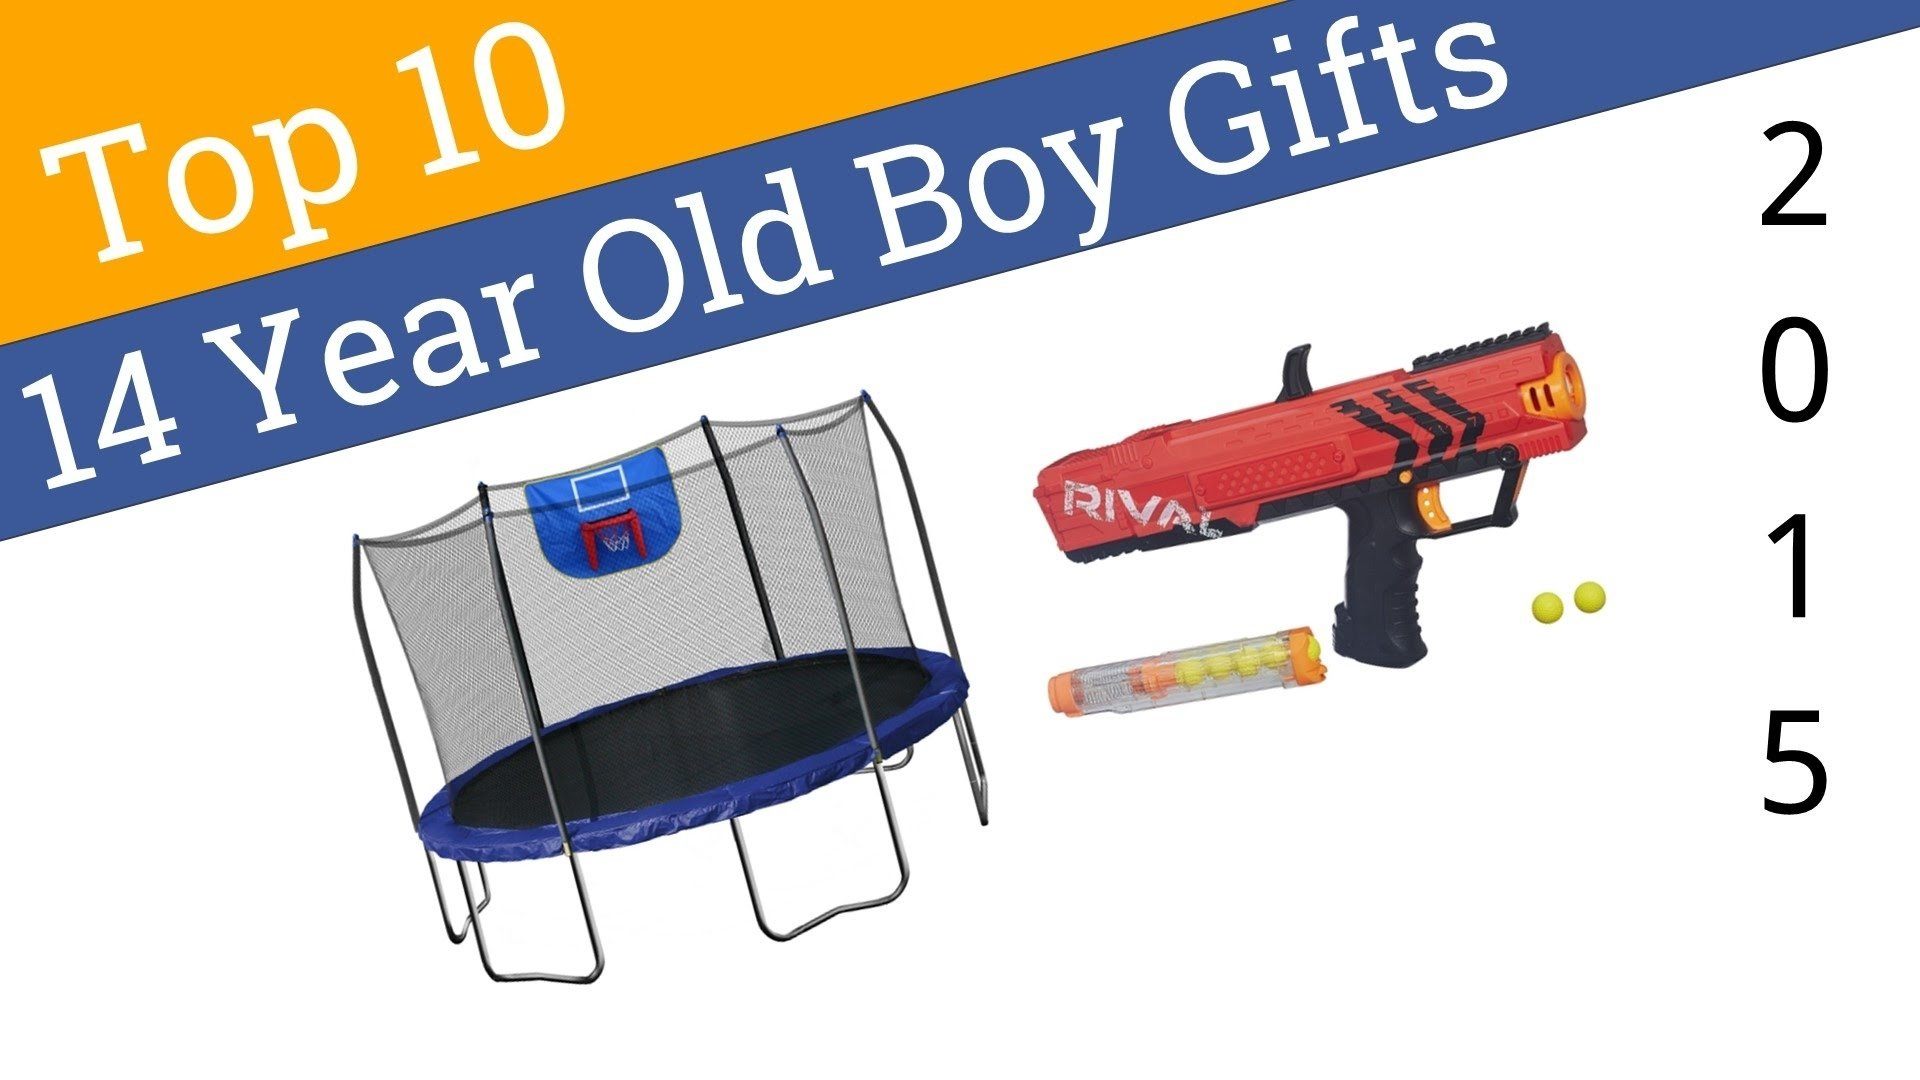 10 Attractive Gift Ideas For 13 Year Old Boy 10 best 14 year old boy gifts 2015 youtube 7 2020